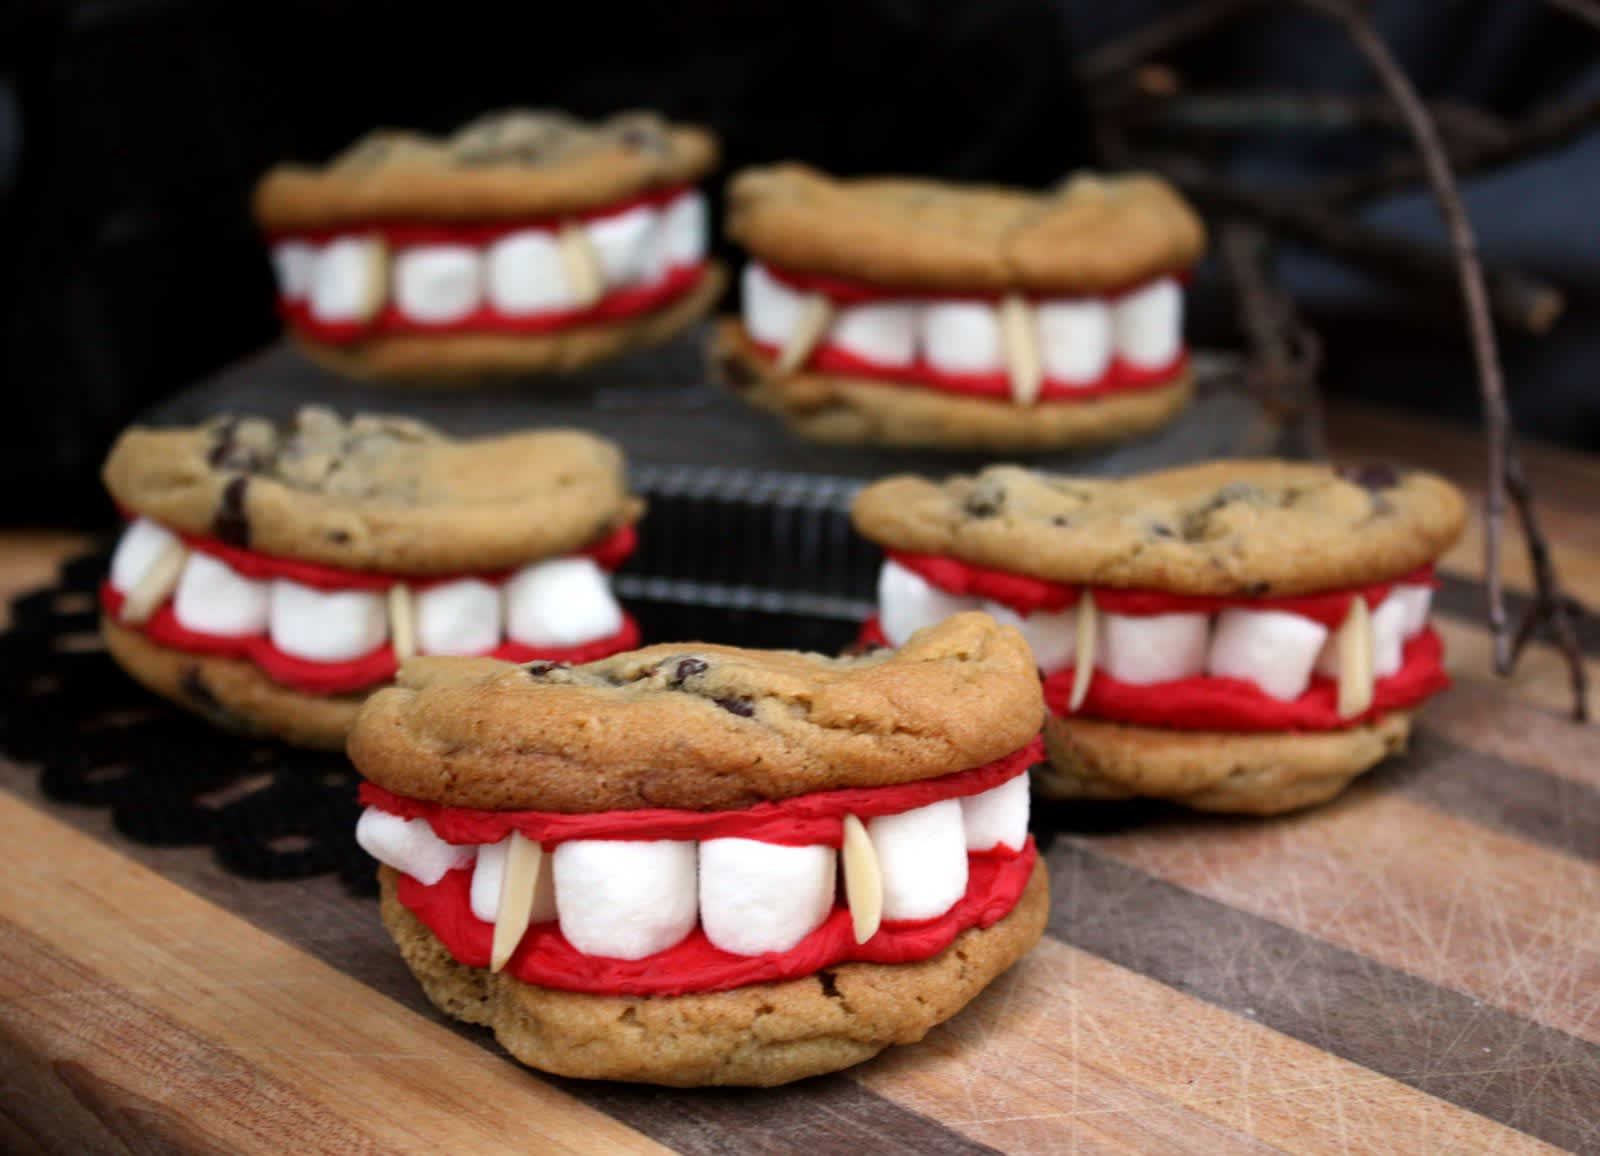 We Tried 7 Popular Halloween Recipes from Pinterest (So You Don't Have To): gallery image 2